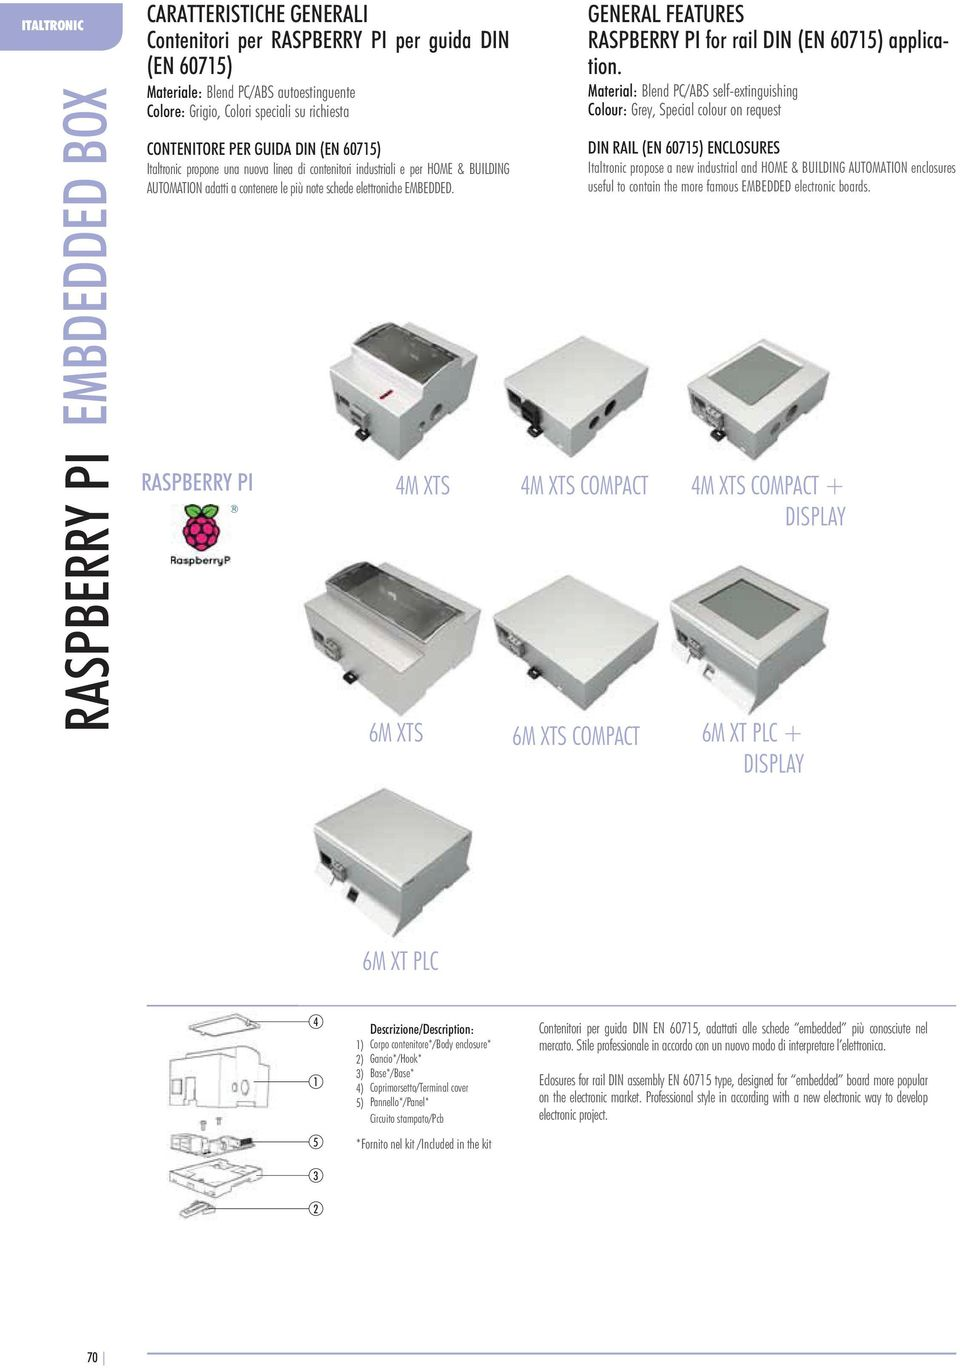 Colour: Grey, Special colour on request DIN RAIL (EN 607) ENCLOSURES Italtronic propose a new industrial and HOME & BUILDING AUTOMATION enclosures useful to contain the more famous EMBEDDED